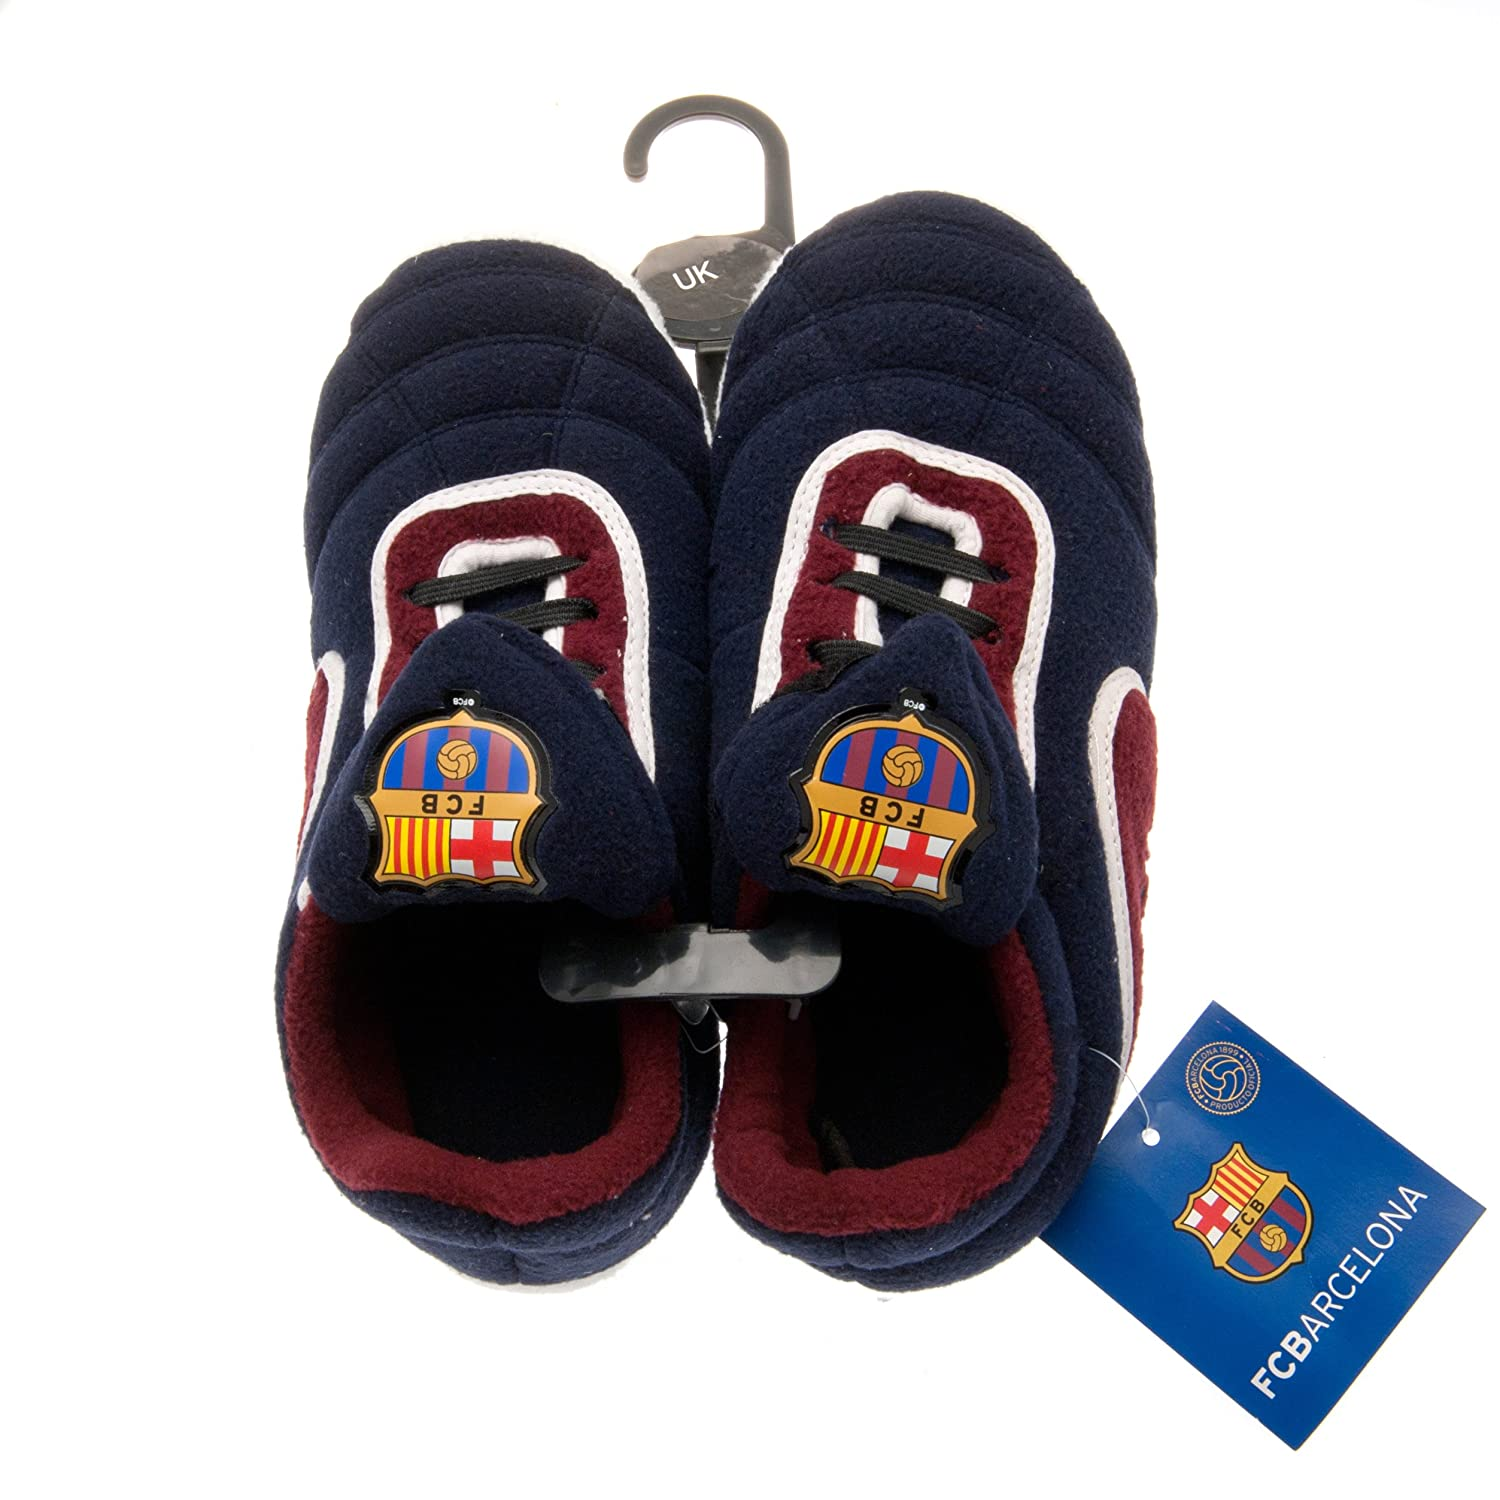 Chaussons FC Barcelone 3jY7wAD